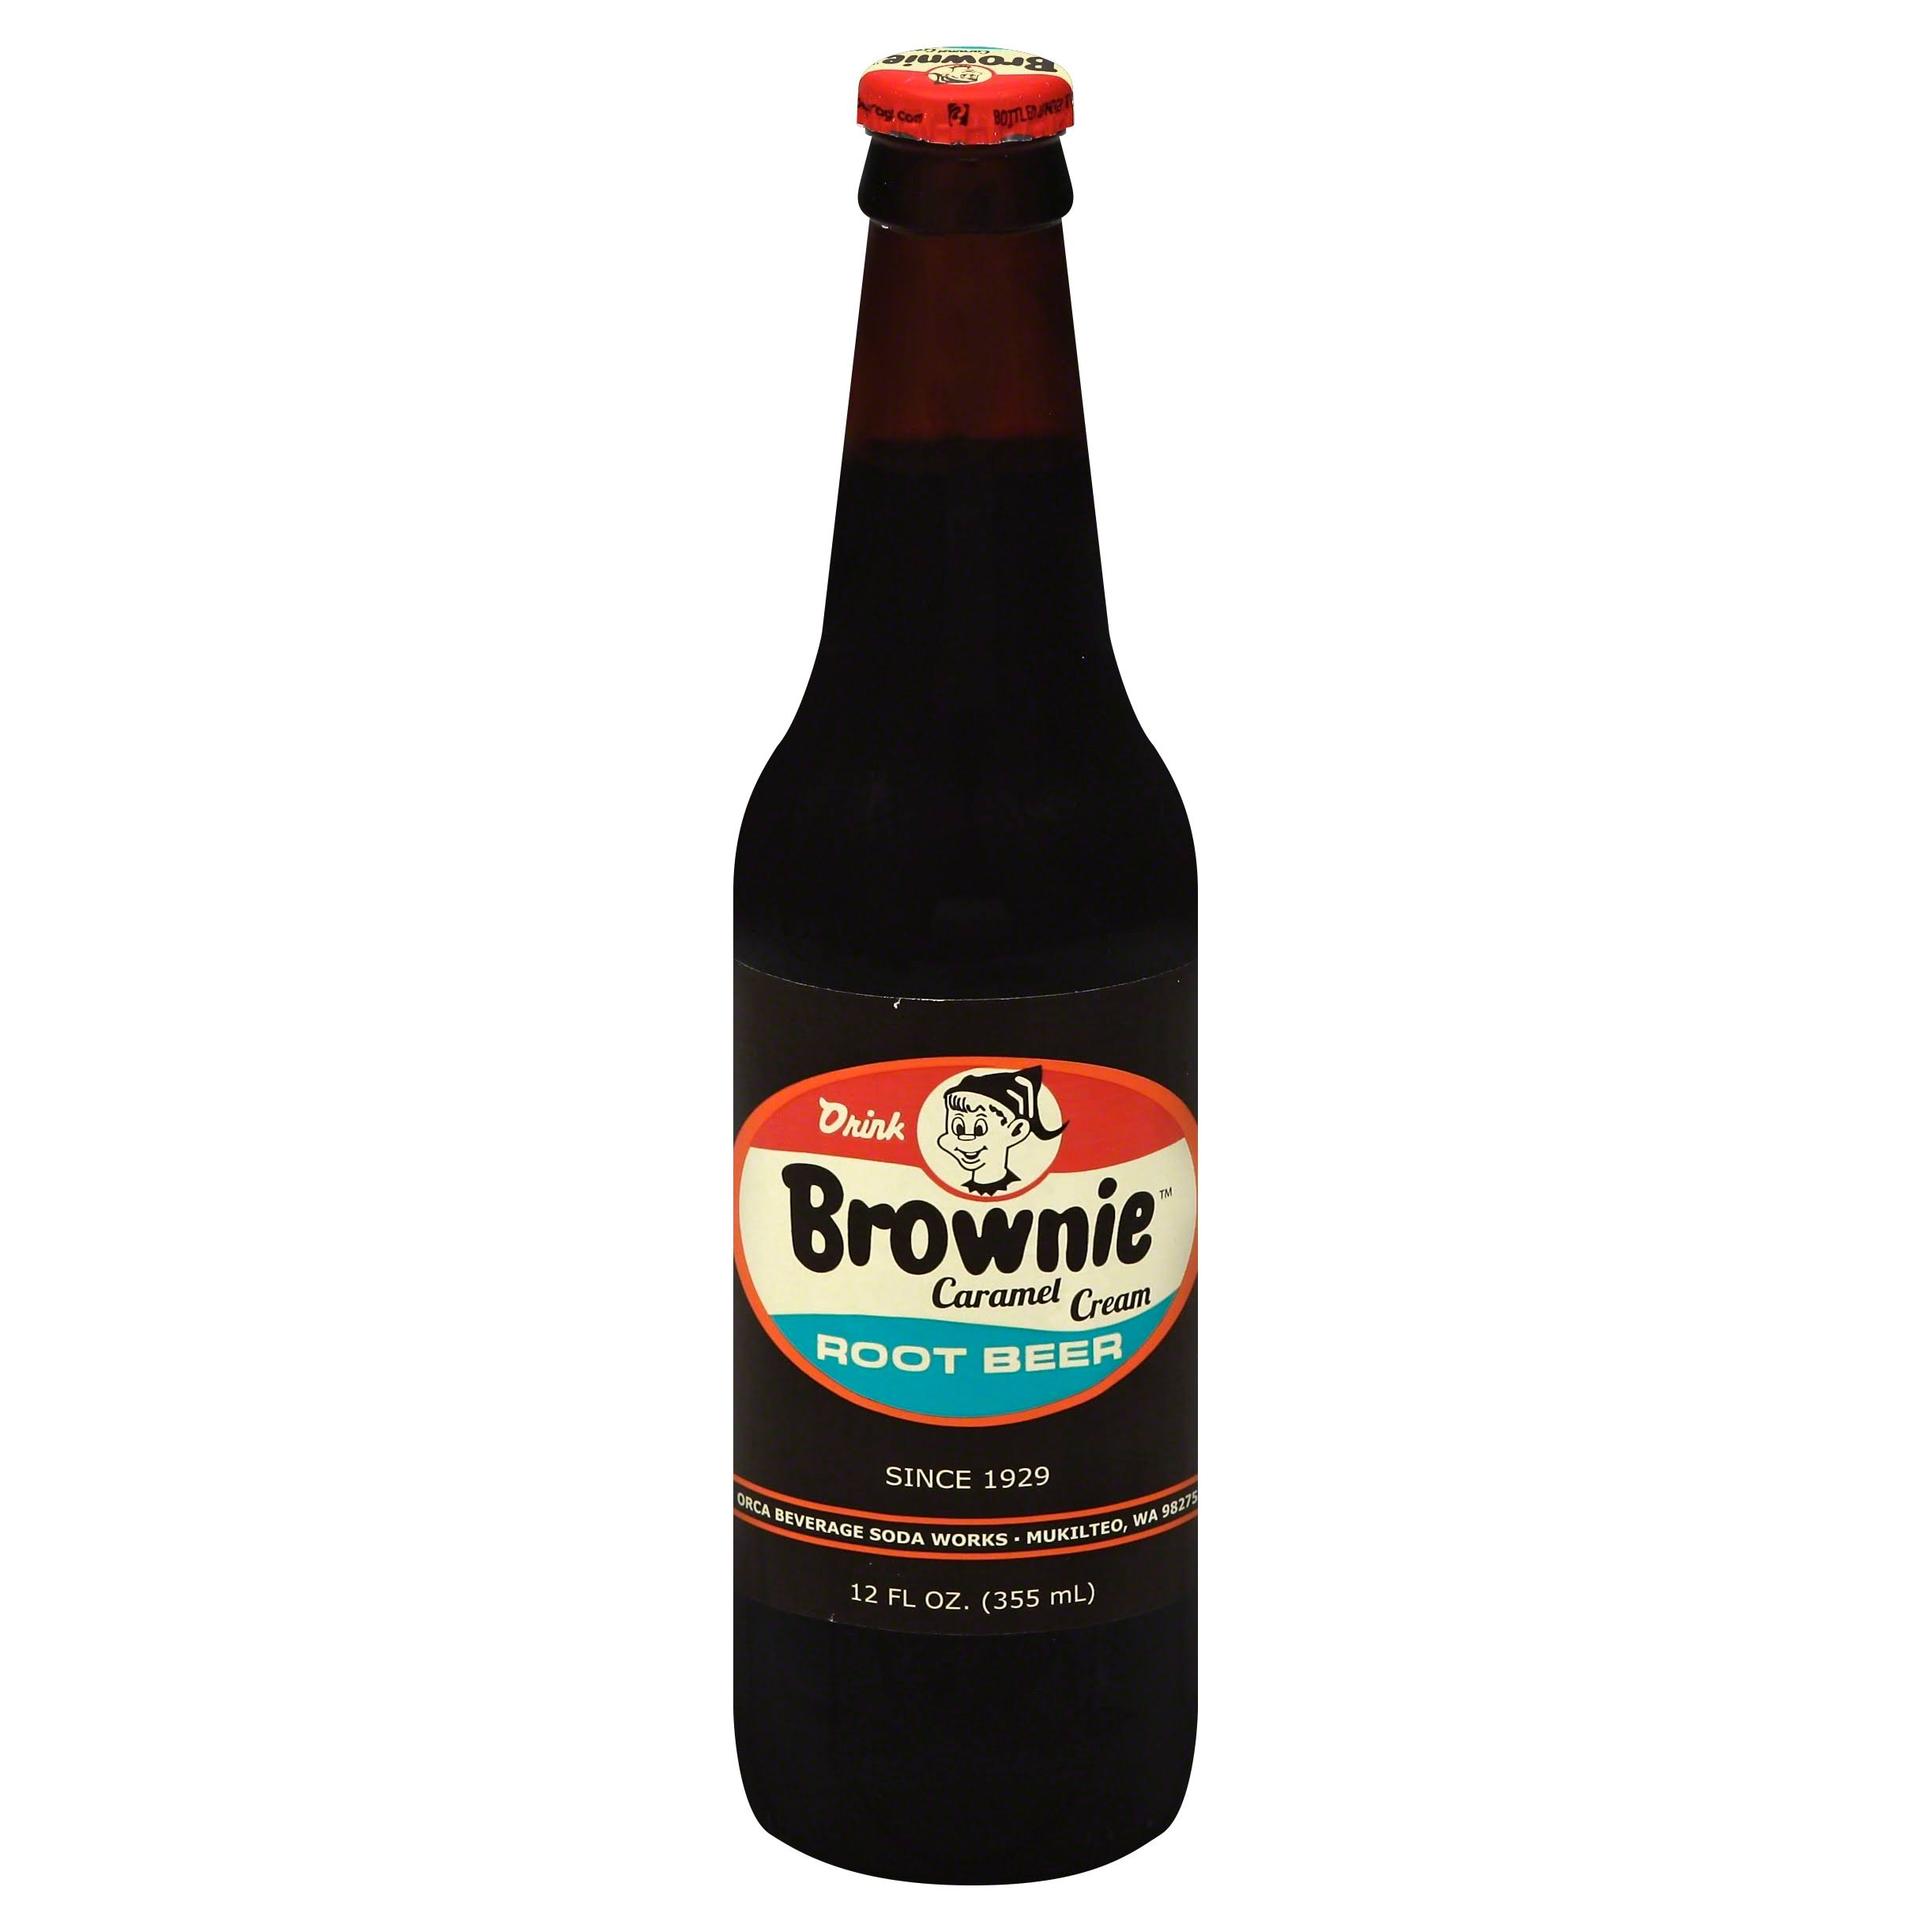 Brownie Root Beer, Caramel Cream - 12 fl oz